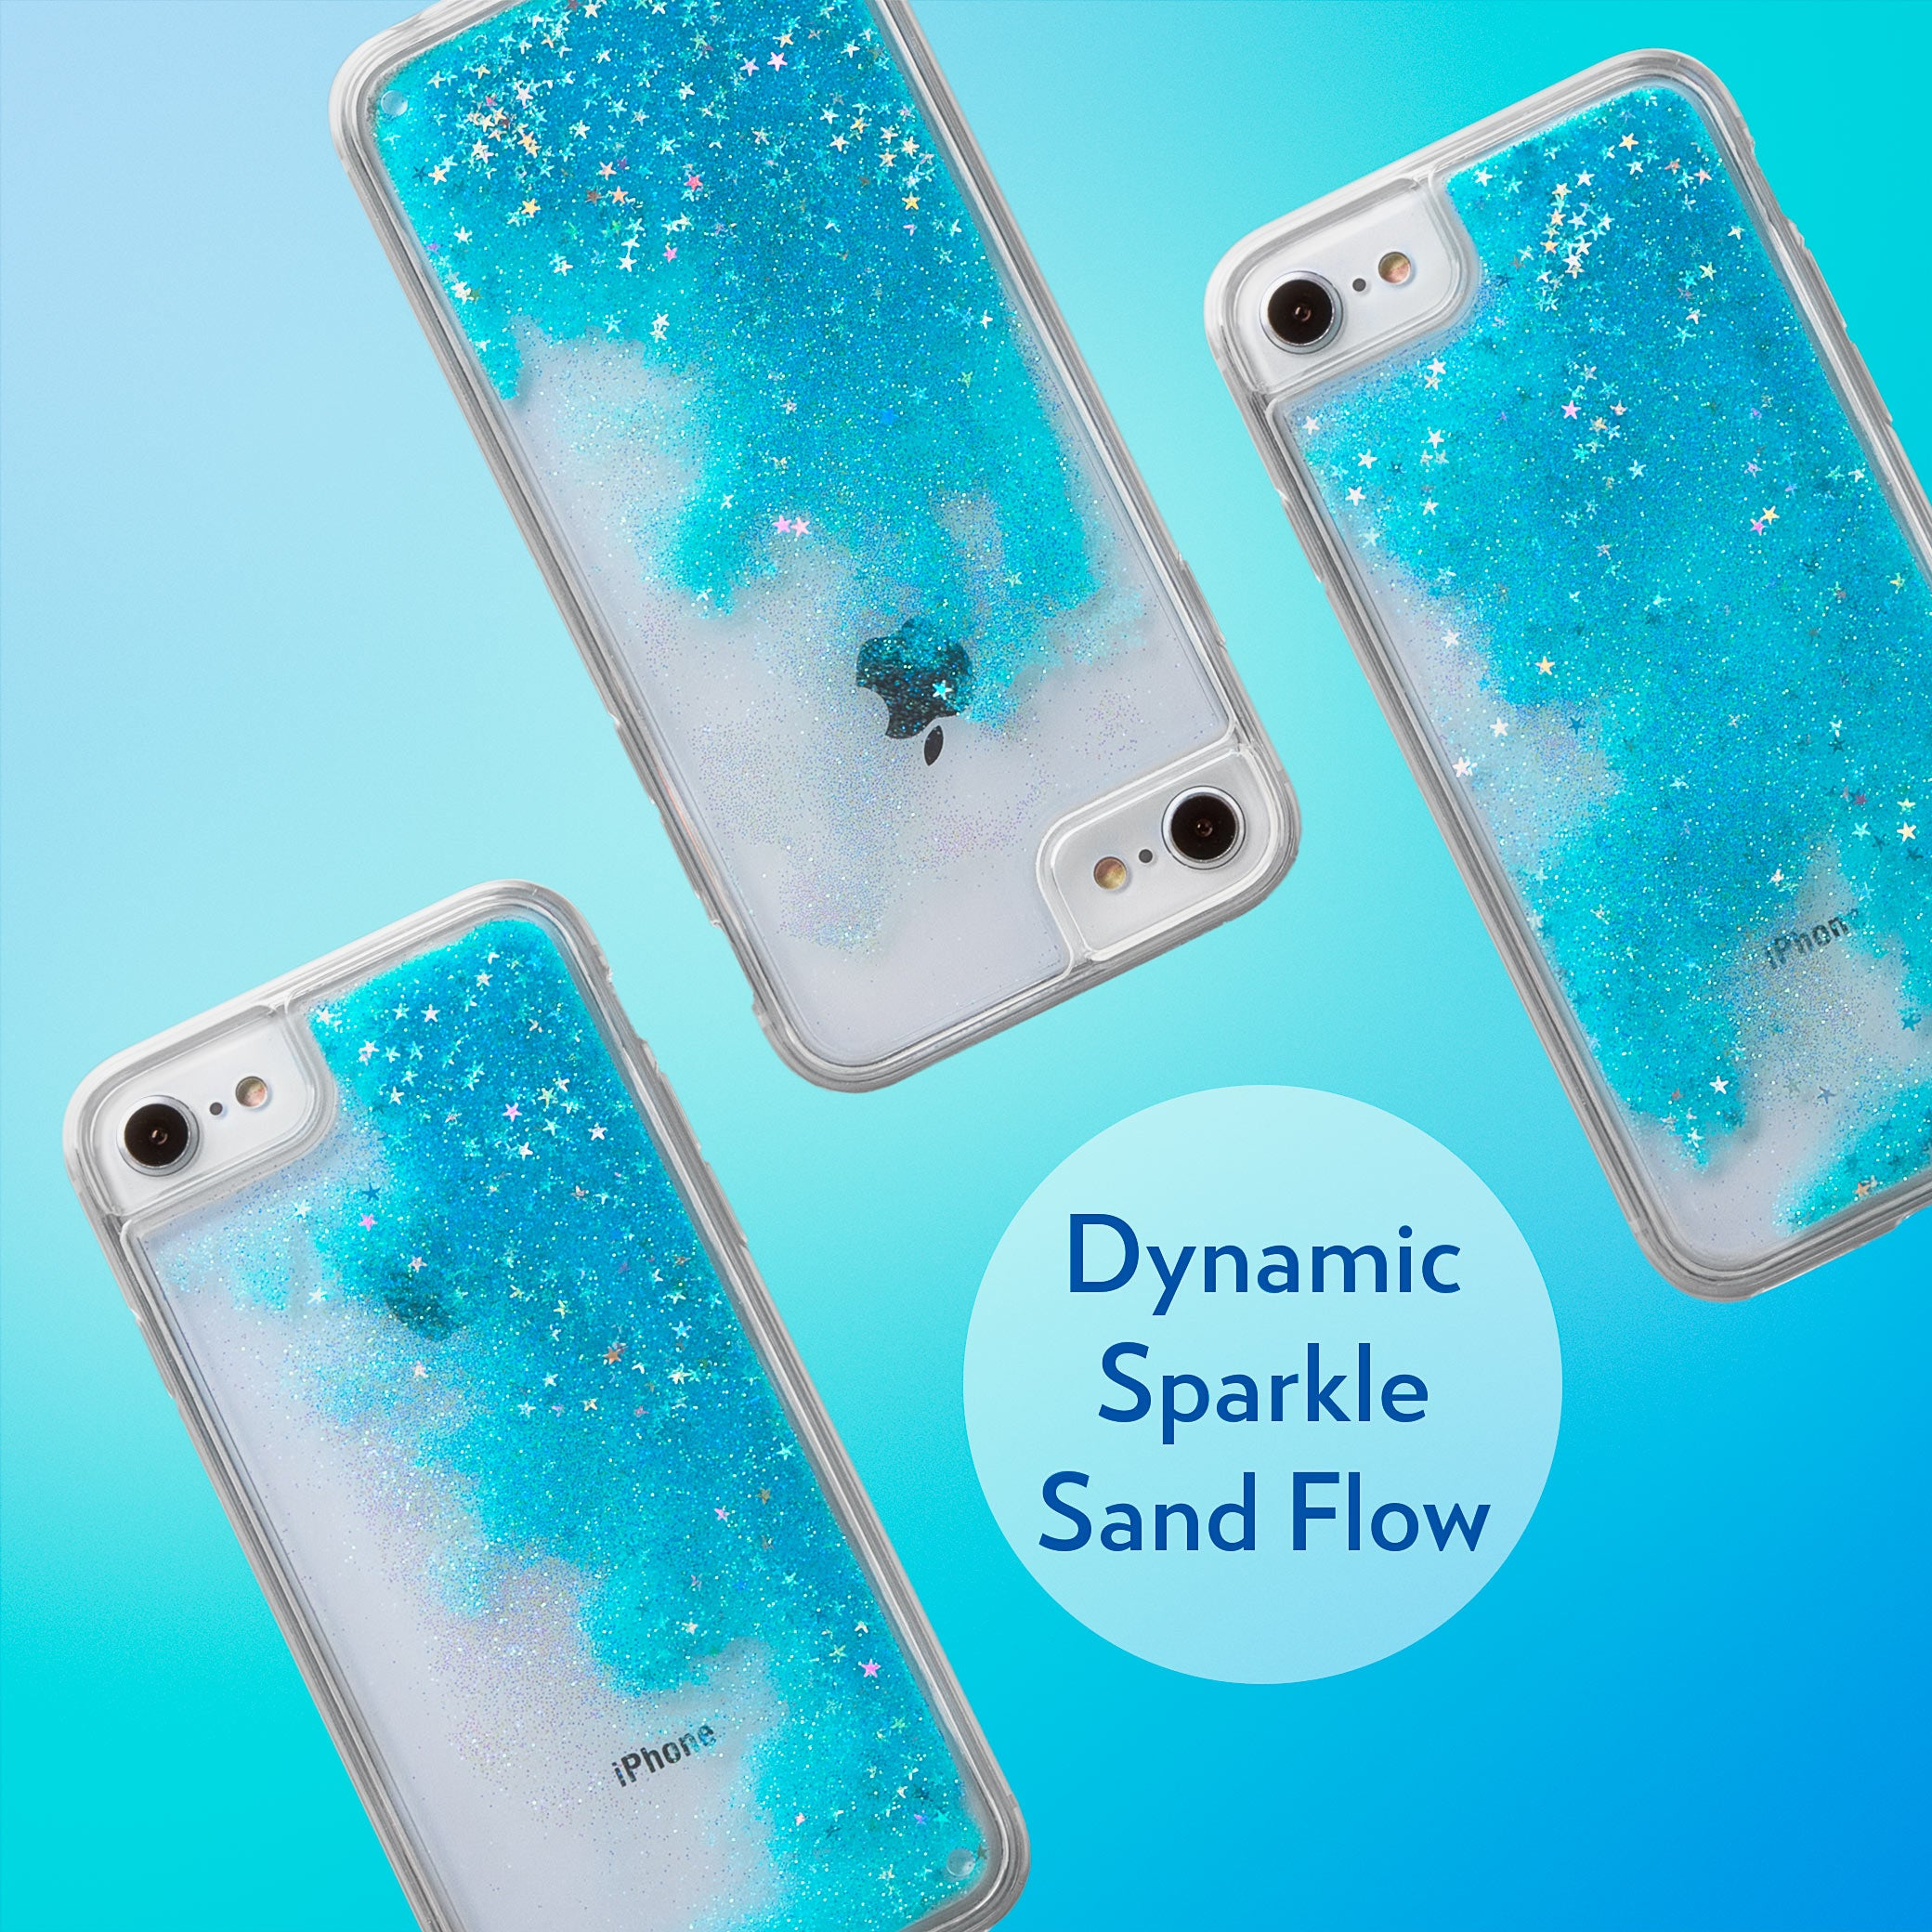 Glitter Liquid Case for iPhone SE, iPhone 8 & iPhone 7 - Iridescent Stars in Blue Sand